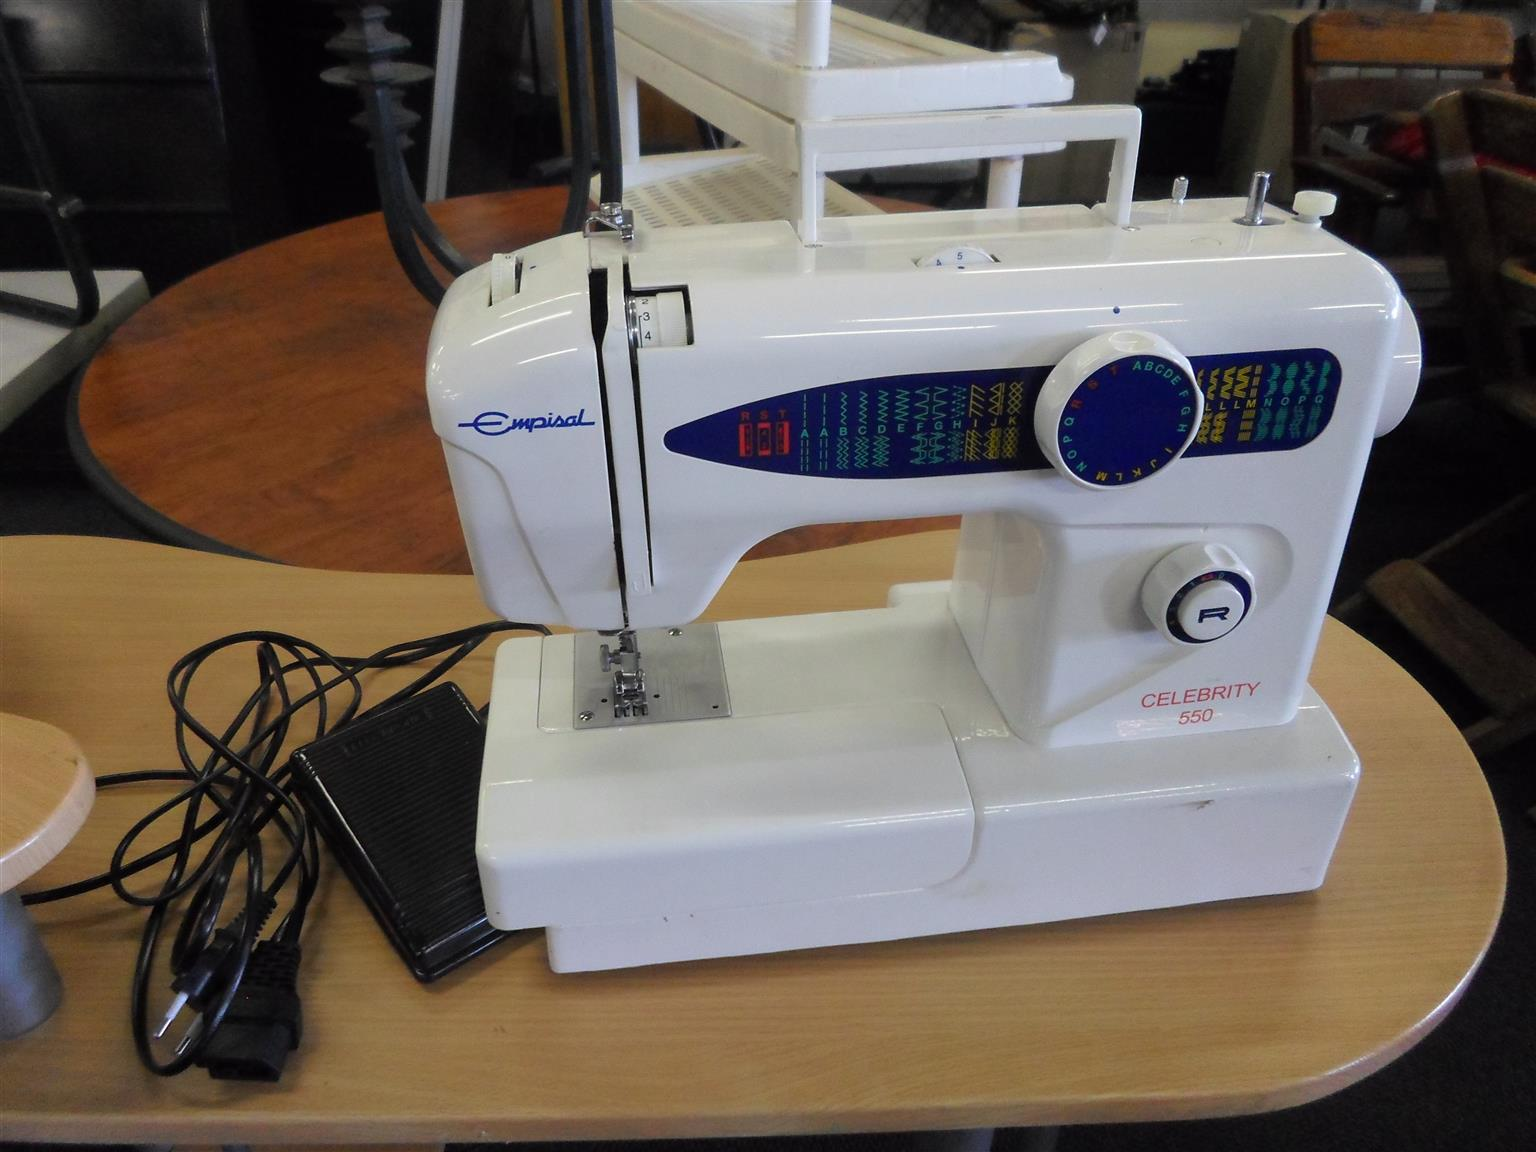 Empisal Celebrity 550 Sewing Machine Junk Mail Bernina 830 Threading Diagram